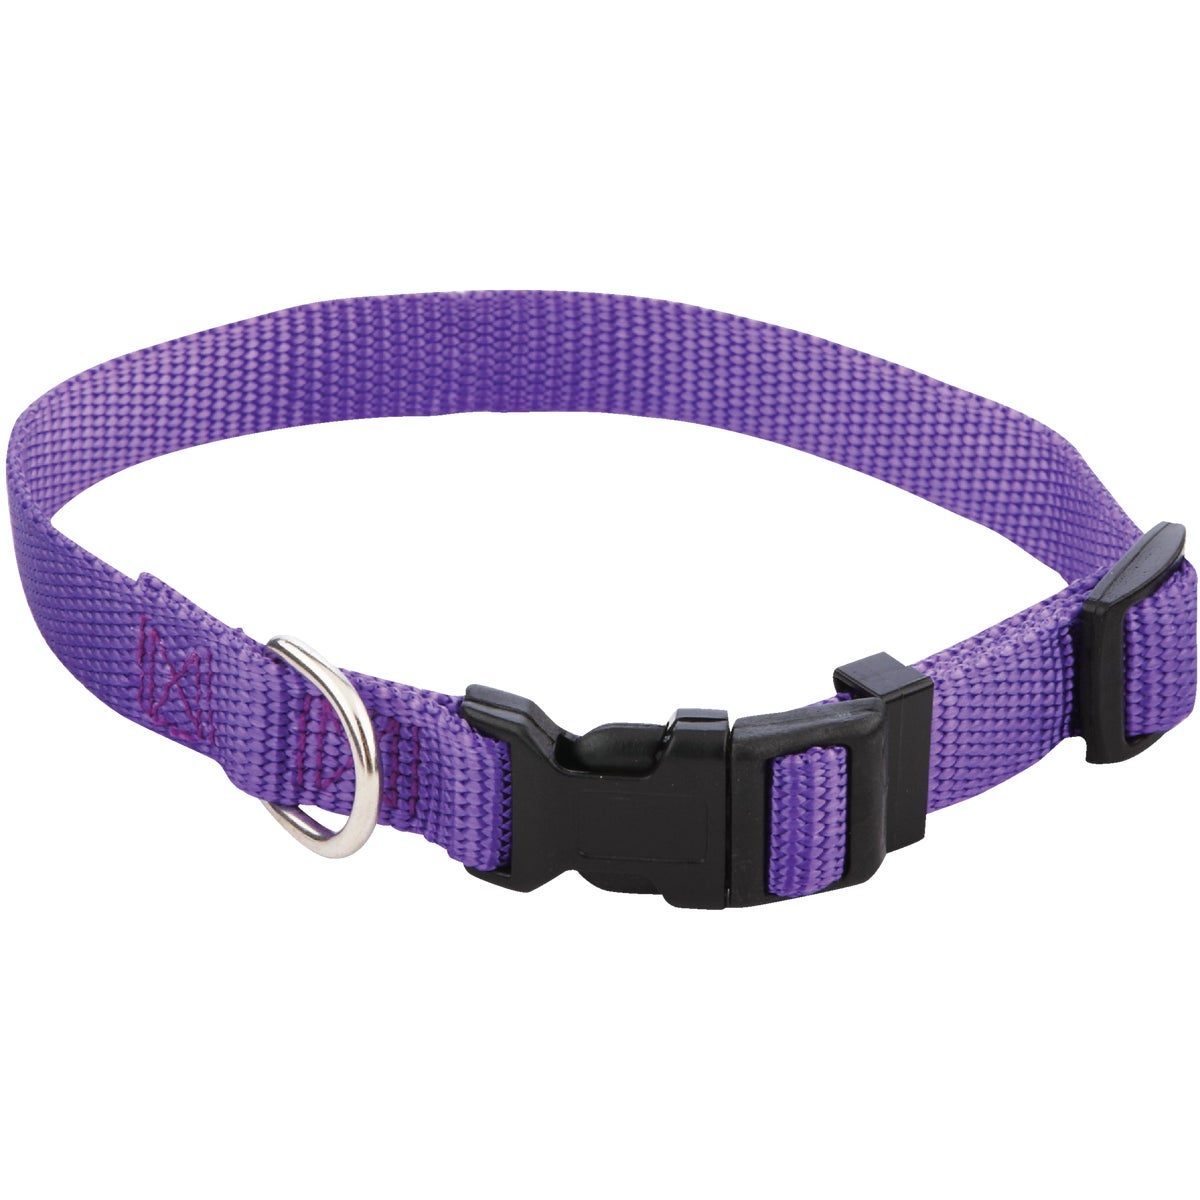 5/8X10-16 FASHION COLLAR - 34141 by Westminster Pet